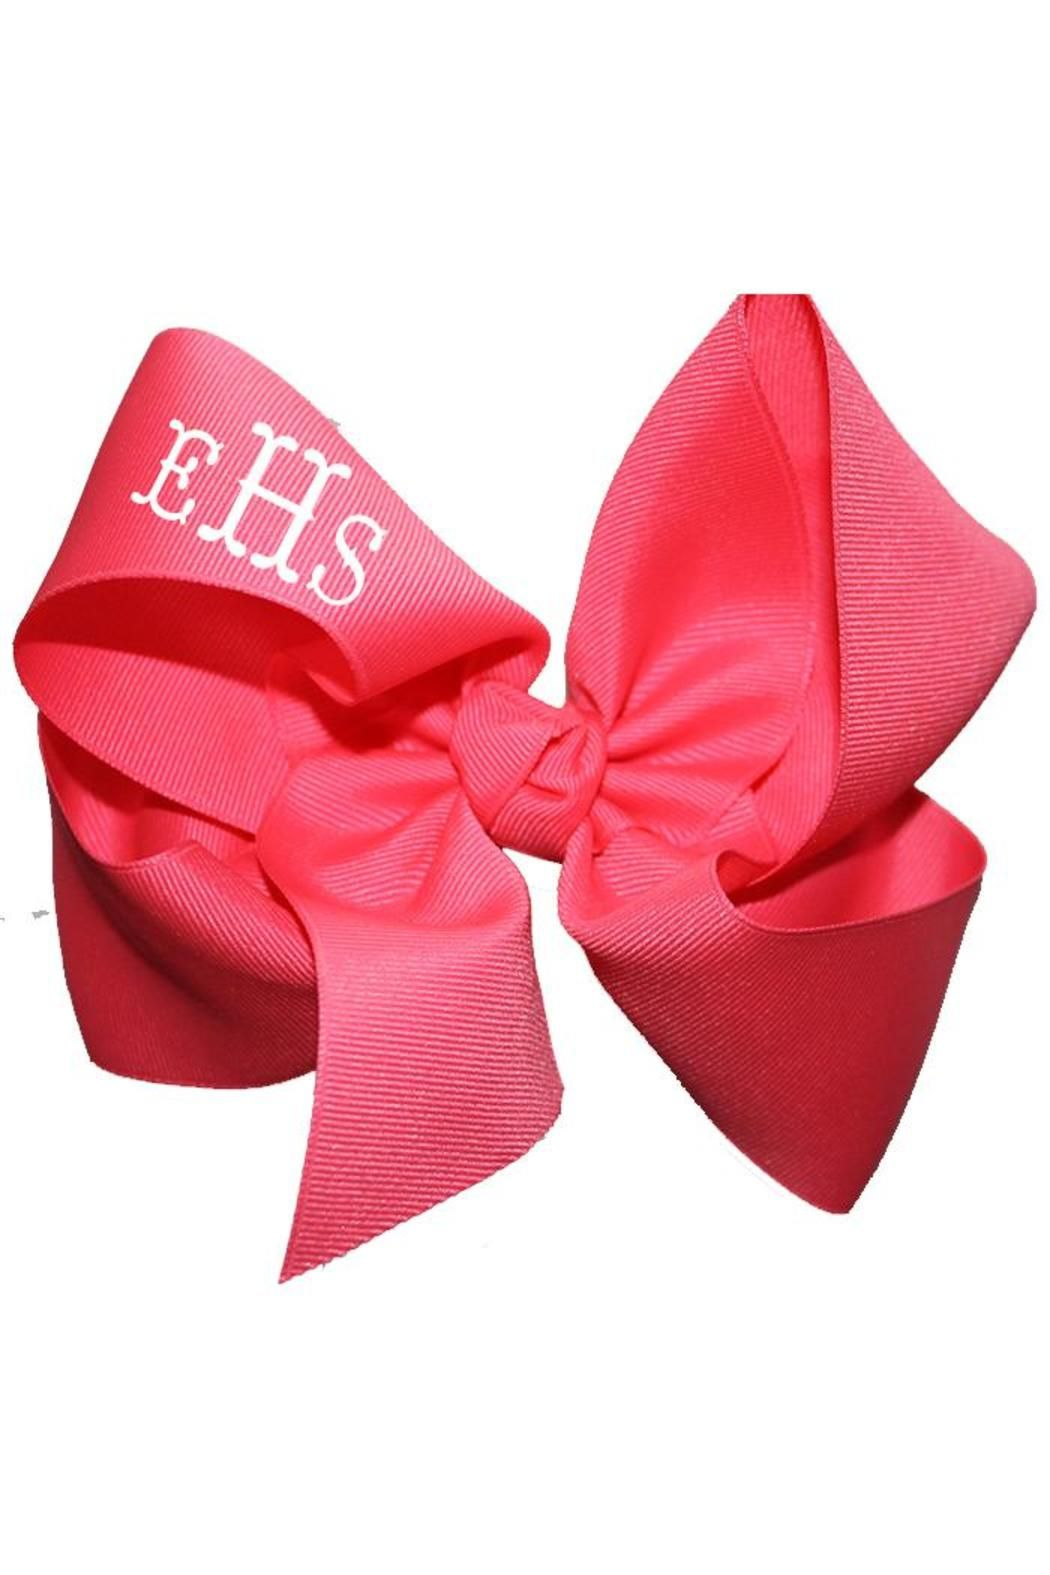 "This personalized medium neon pink hair bow is made of 2.25"" grosgrain ribbon to give you a full effect. It is a popular gift among young tweens and teens and even high school kids! Turnaround time is 3 business days plus shipping time. For customization please email Stylist@shoptiques.com with your choice of heat press color, monogram style and monogram initials. All custom items are final sale.     Measures: 6.5"" across   Personalized Neon-Pink Bow by Party Cat. Accessories Austin, Texas"